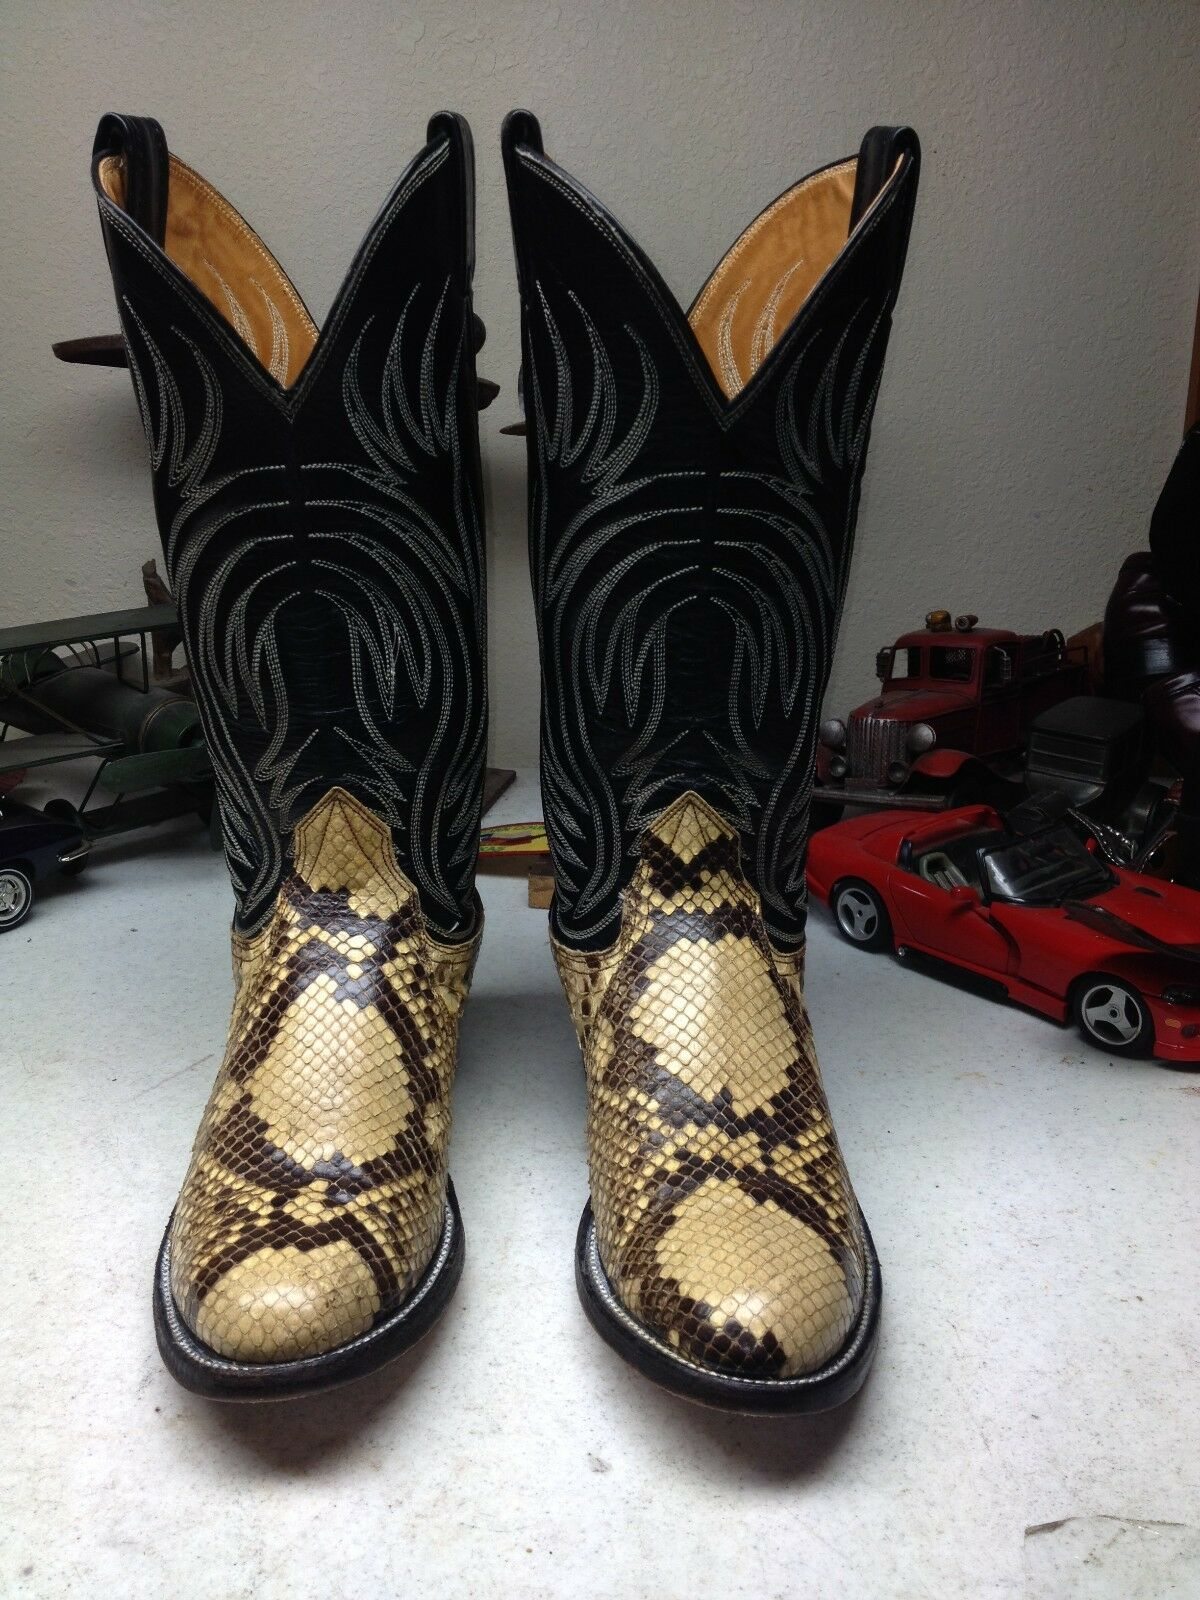 CLASSIC NOCONA MADE IN USA BROWN LEATHER SNAKE SKIN WESTERN COWBOY BOOTS 9 B